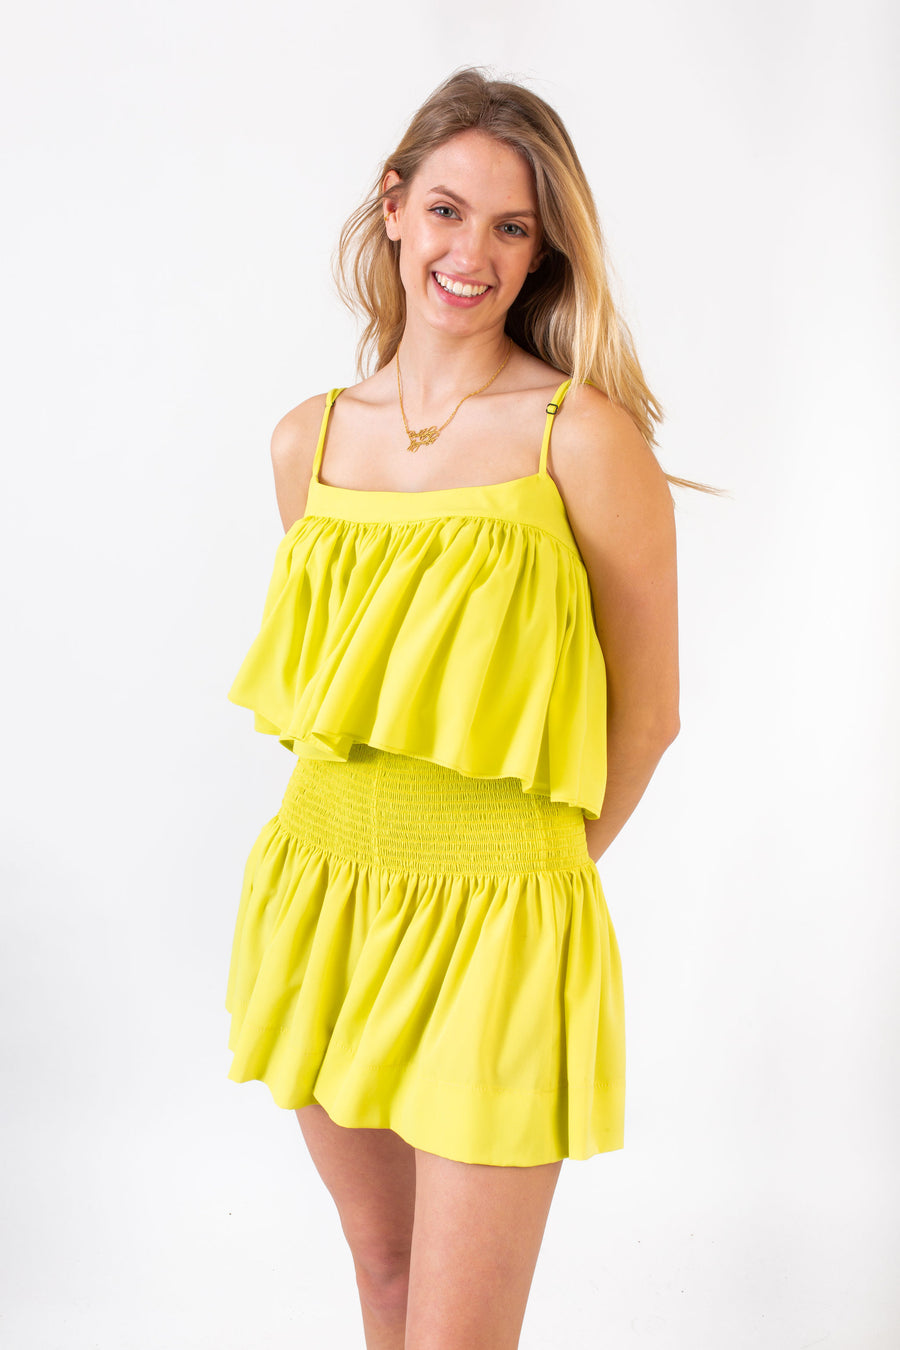 ERICA SKIRT SUNRISE YELLOW *LIMITED*EDITION*